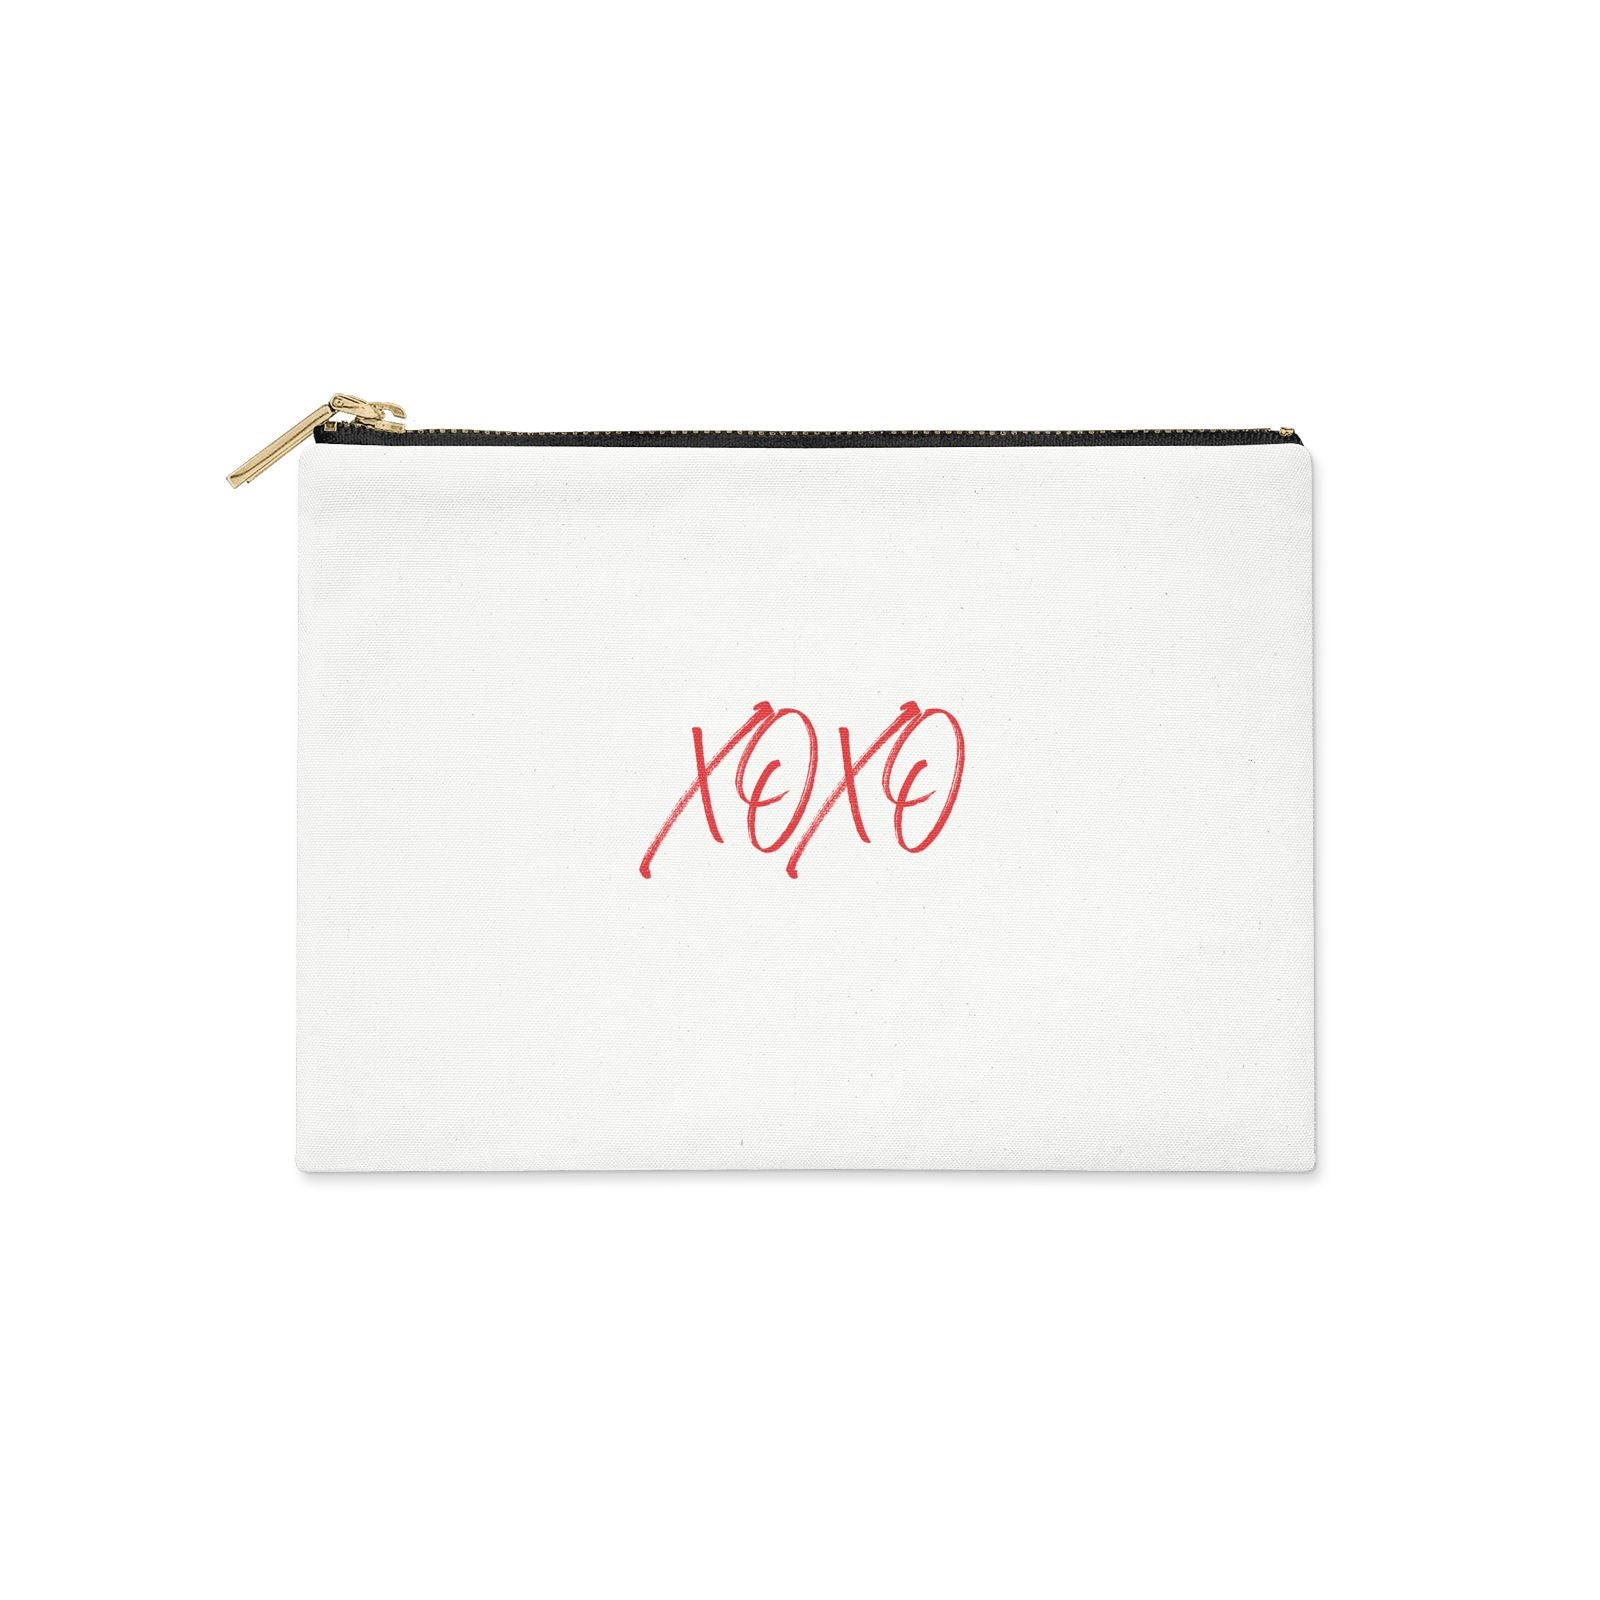 I love you like xo Clutch Bag Zipper Pouch